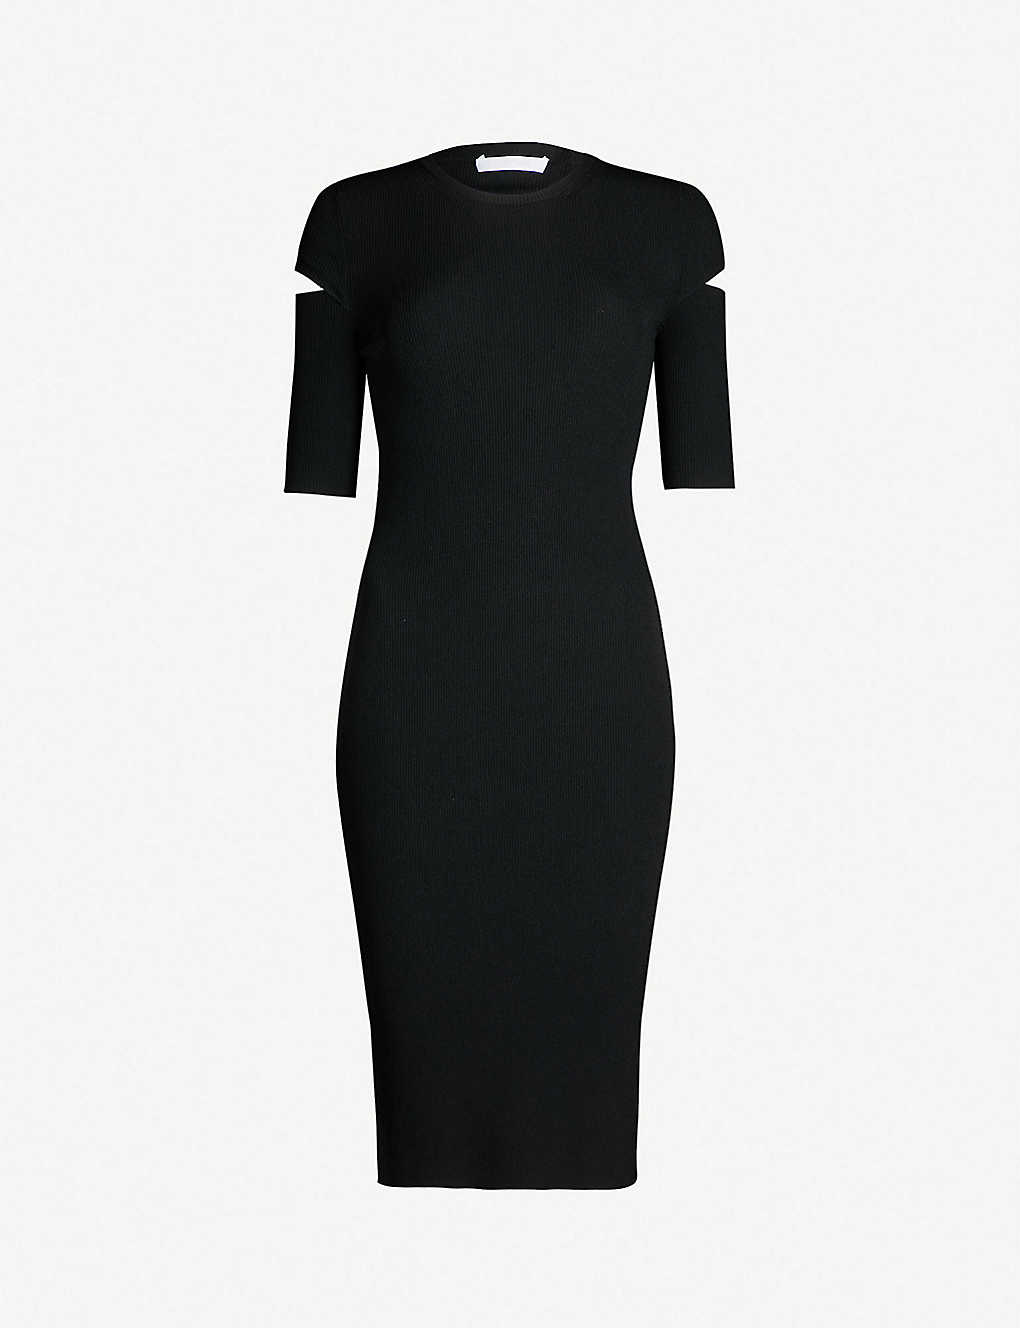 8b59feb77eb2 HELMUT LANG - Cutout-sleeve jersey dress | Selfridges.com